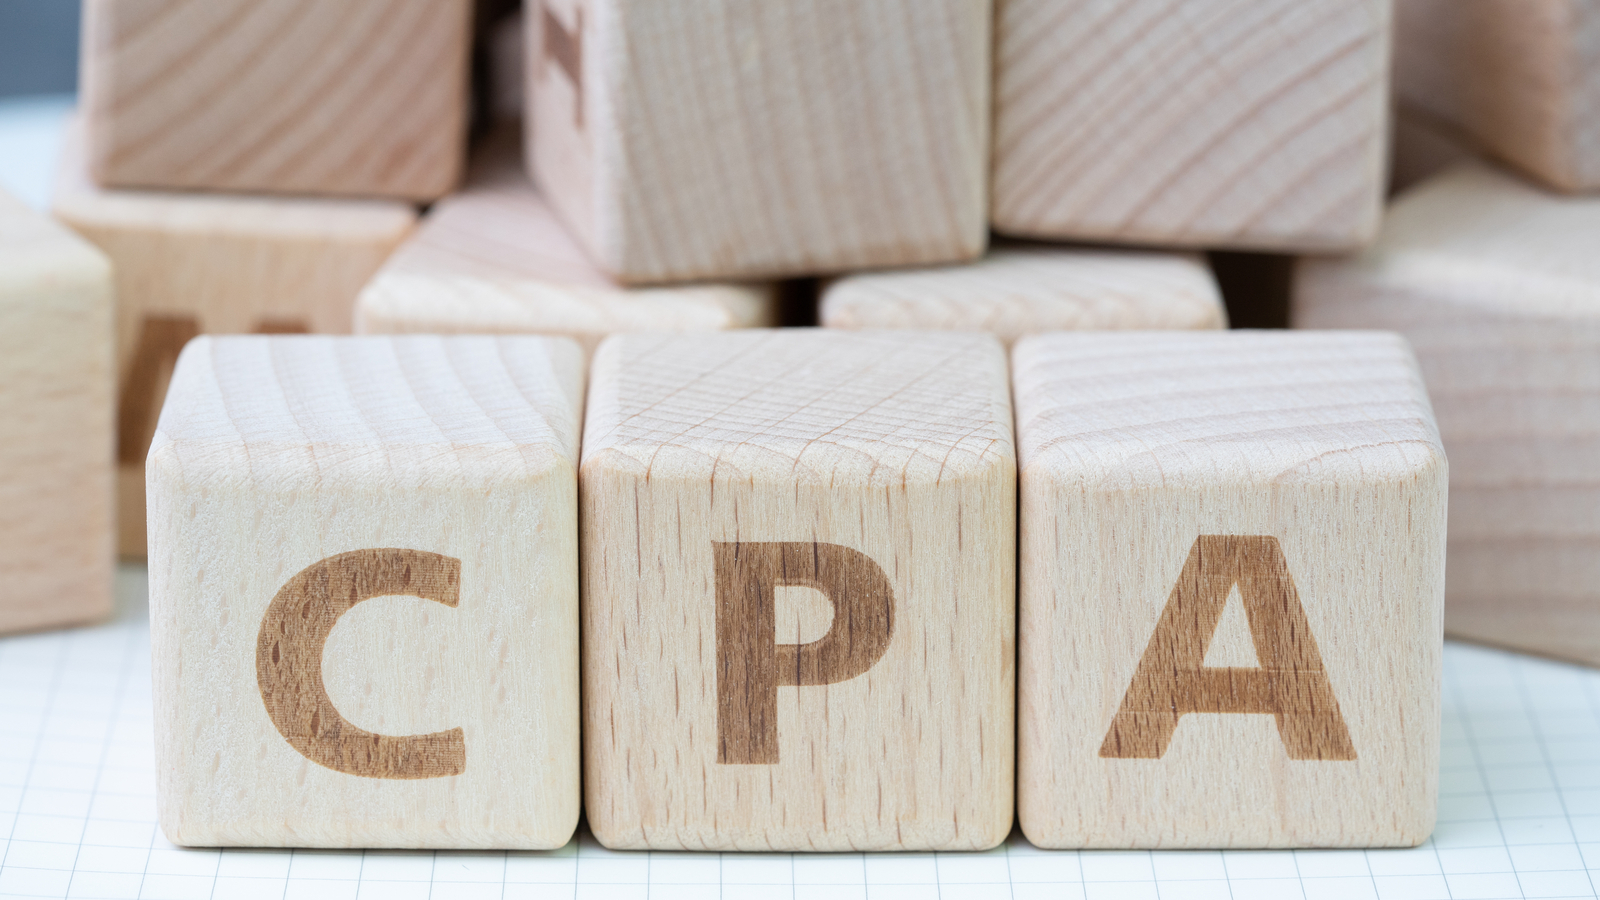 Individual CPAs eligible to apply for .CPA domains